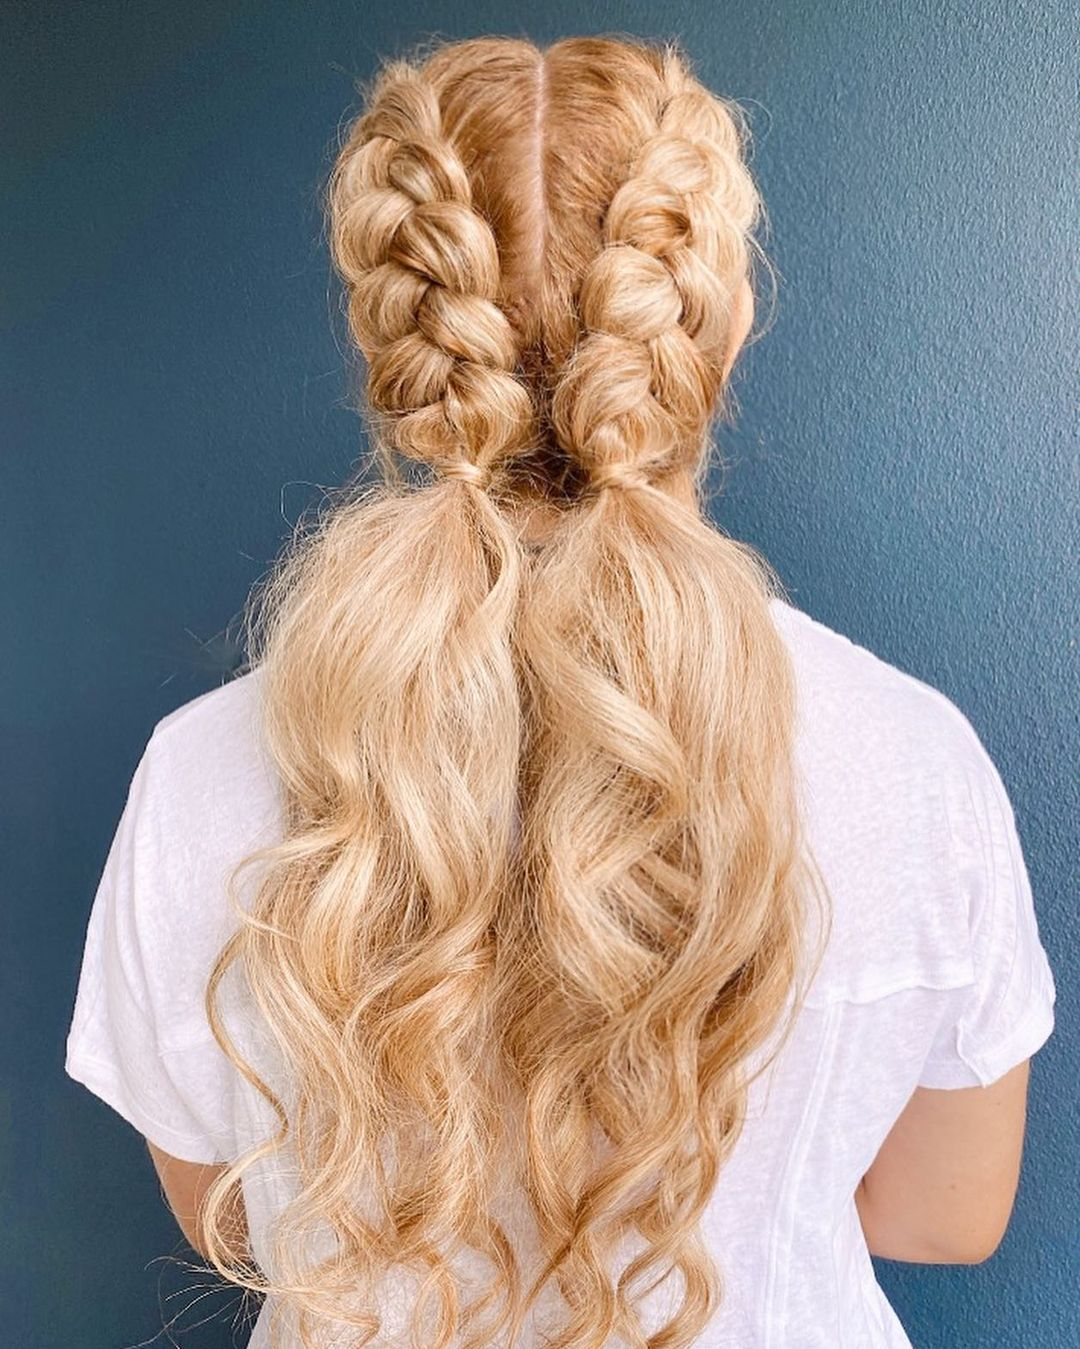 Hairstyles to Sleep In for Long Hair